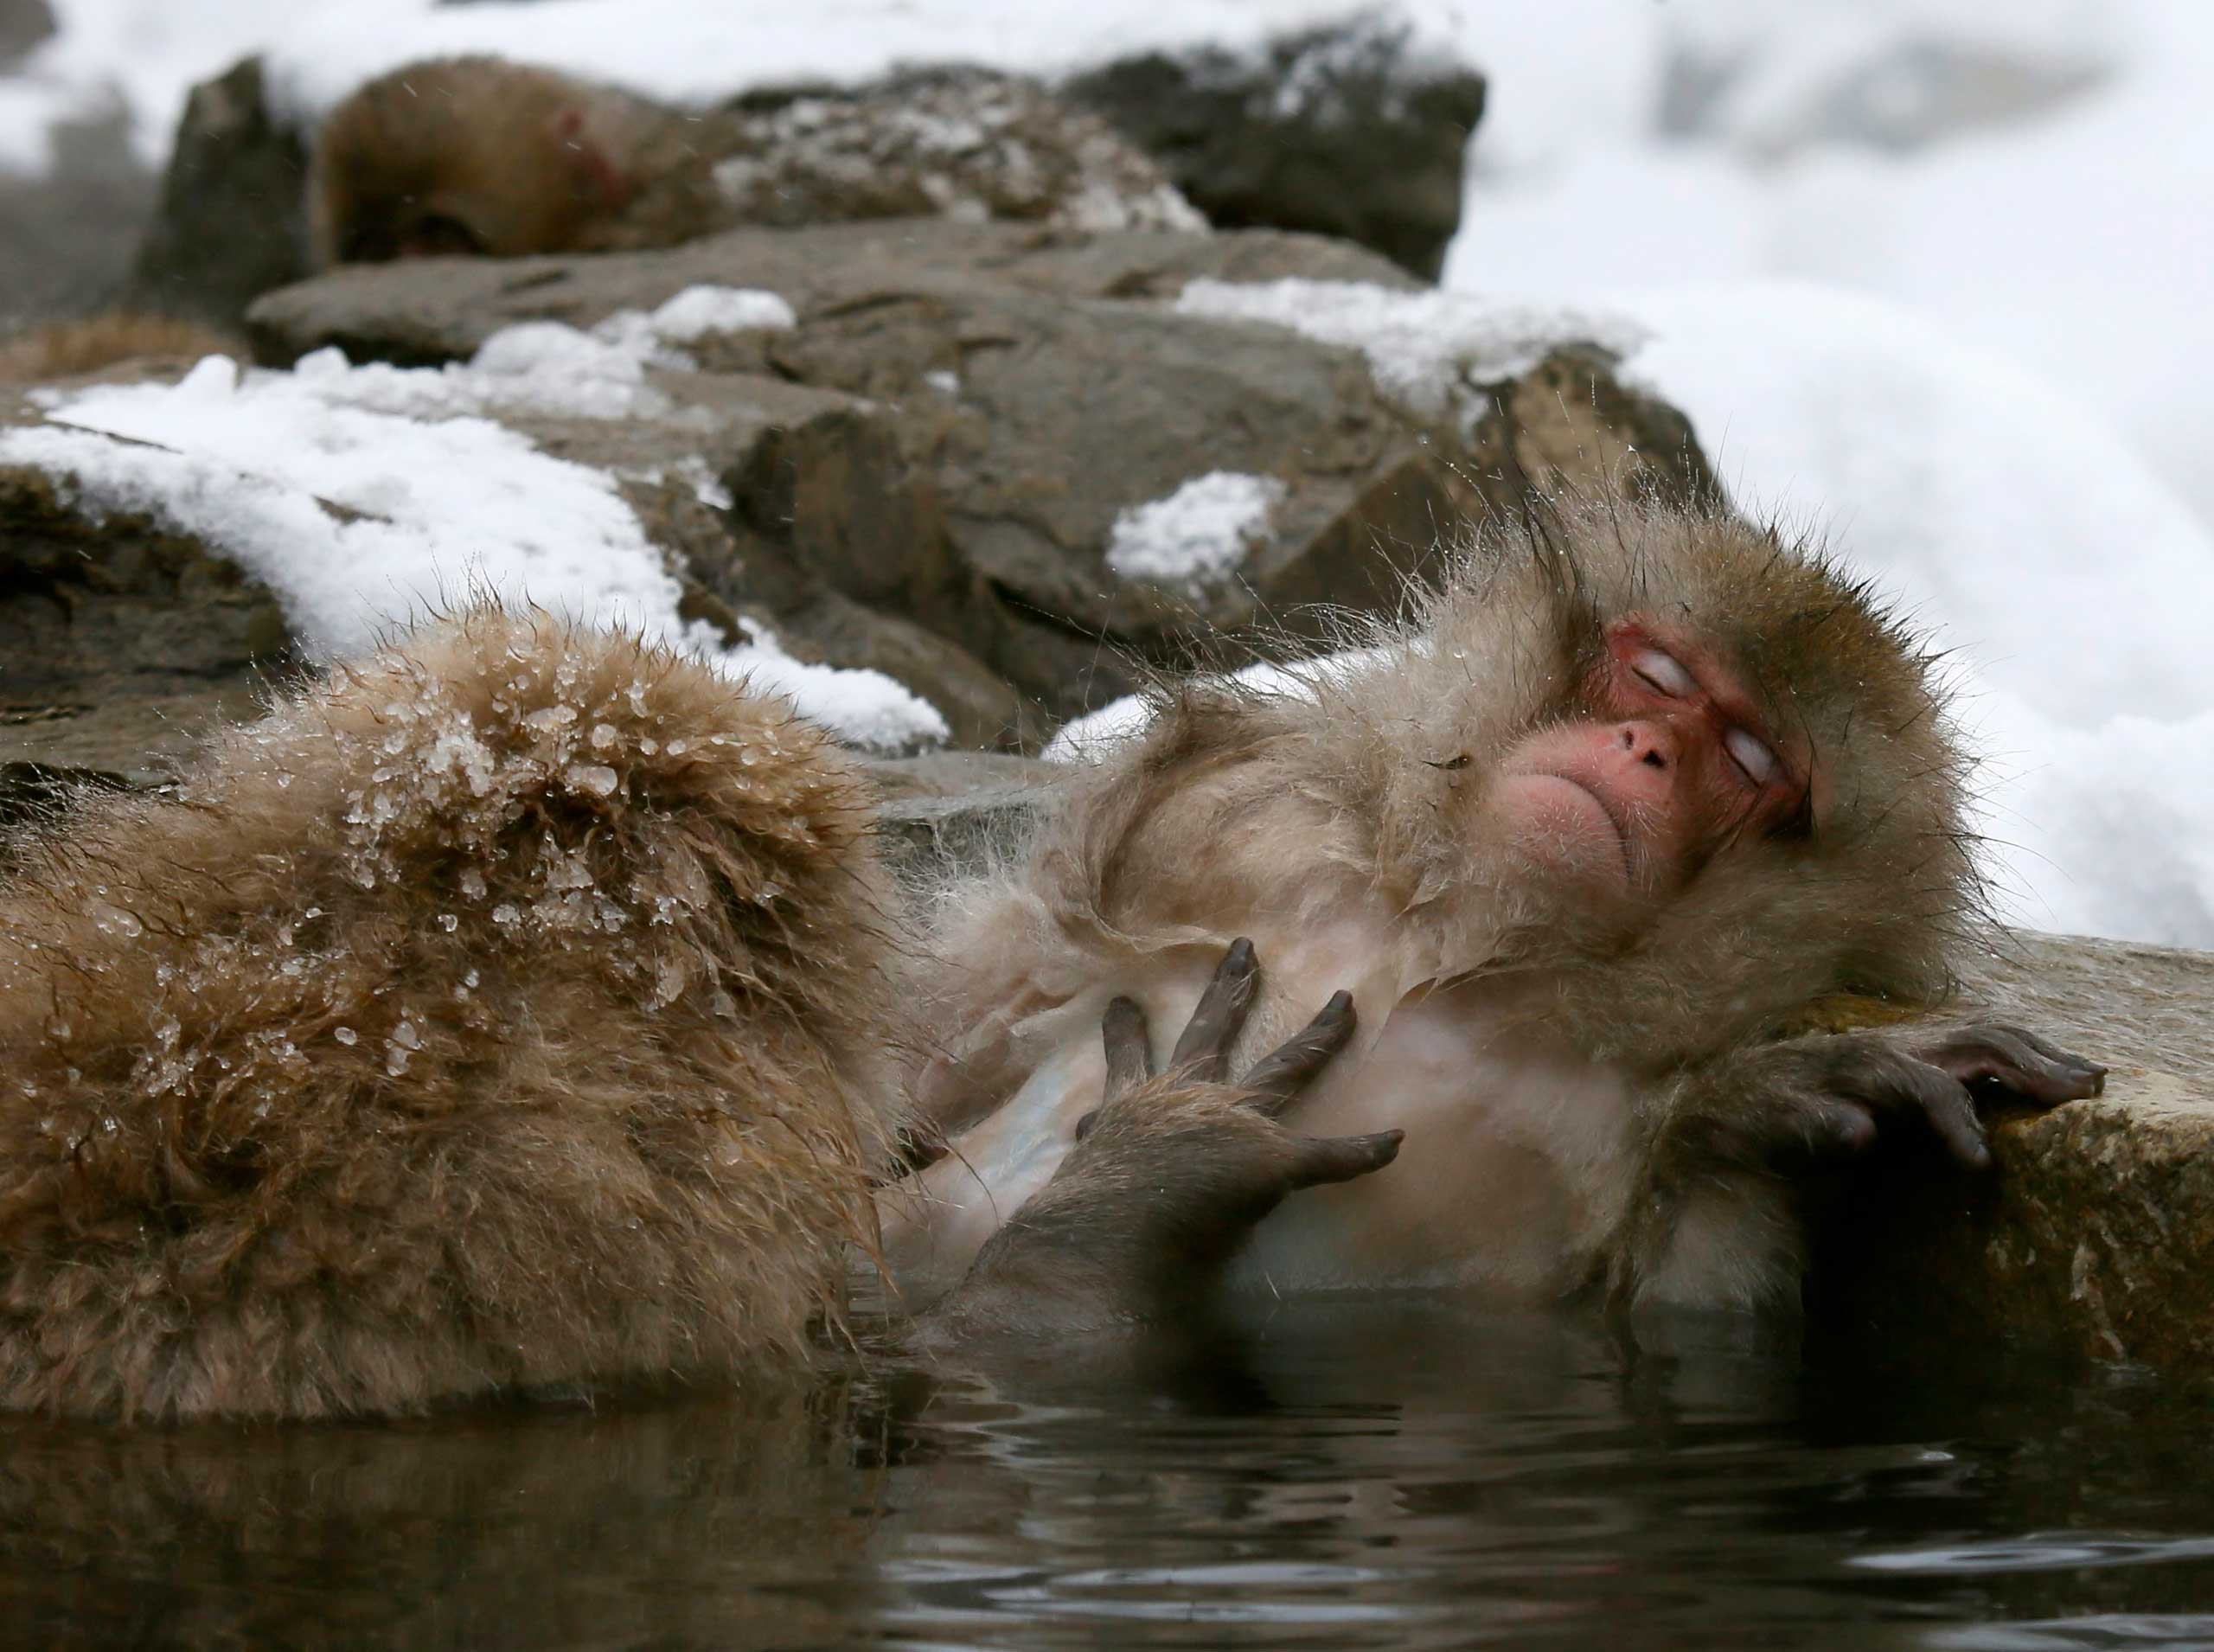 Japanese Macaque monkeys soak in the warmth of mountain hotsprings at Jigokudani Monkey Park, Yamanouchi, Japan, Jan. 19, 2014.